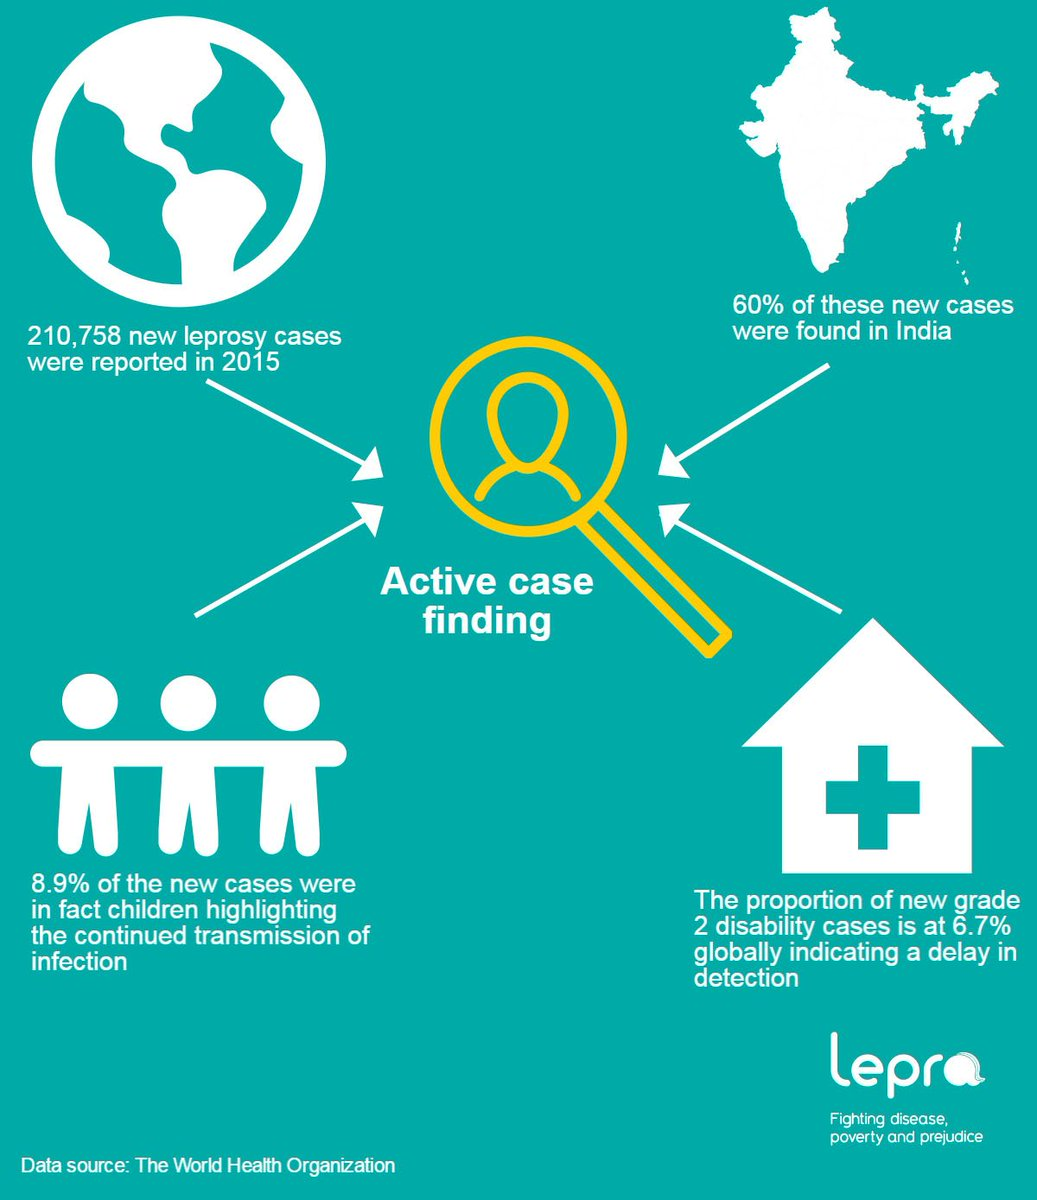 The Recent WHO Leprosy Figures Highlight Need For More Active Case Finding To Prevent Disability Transmission